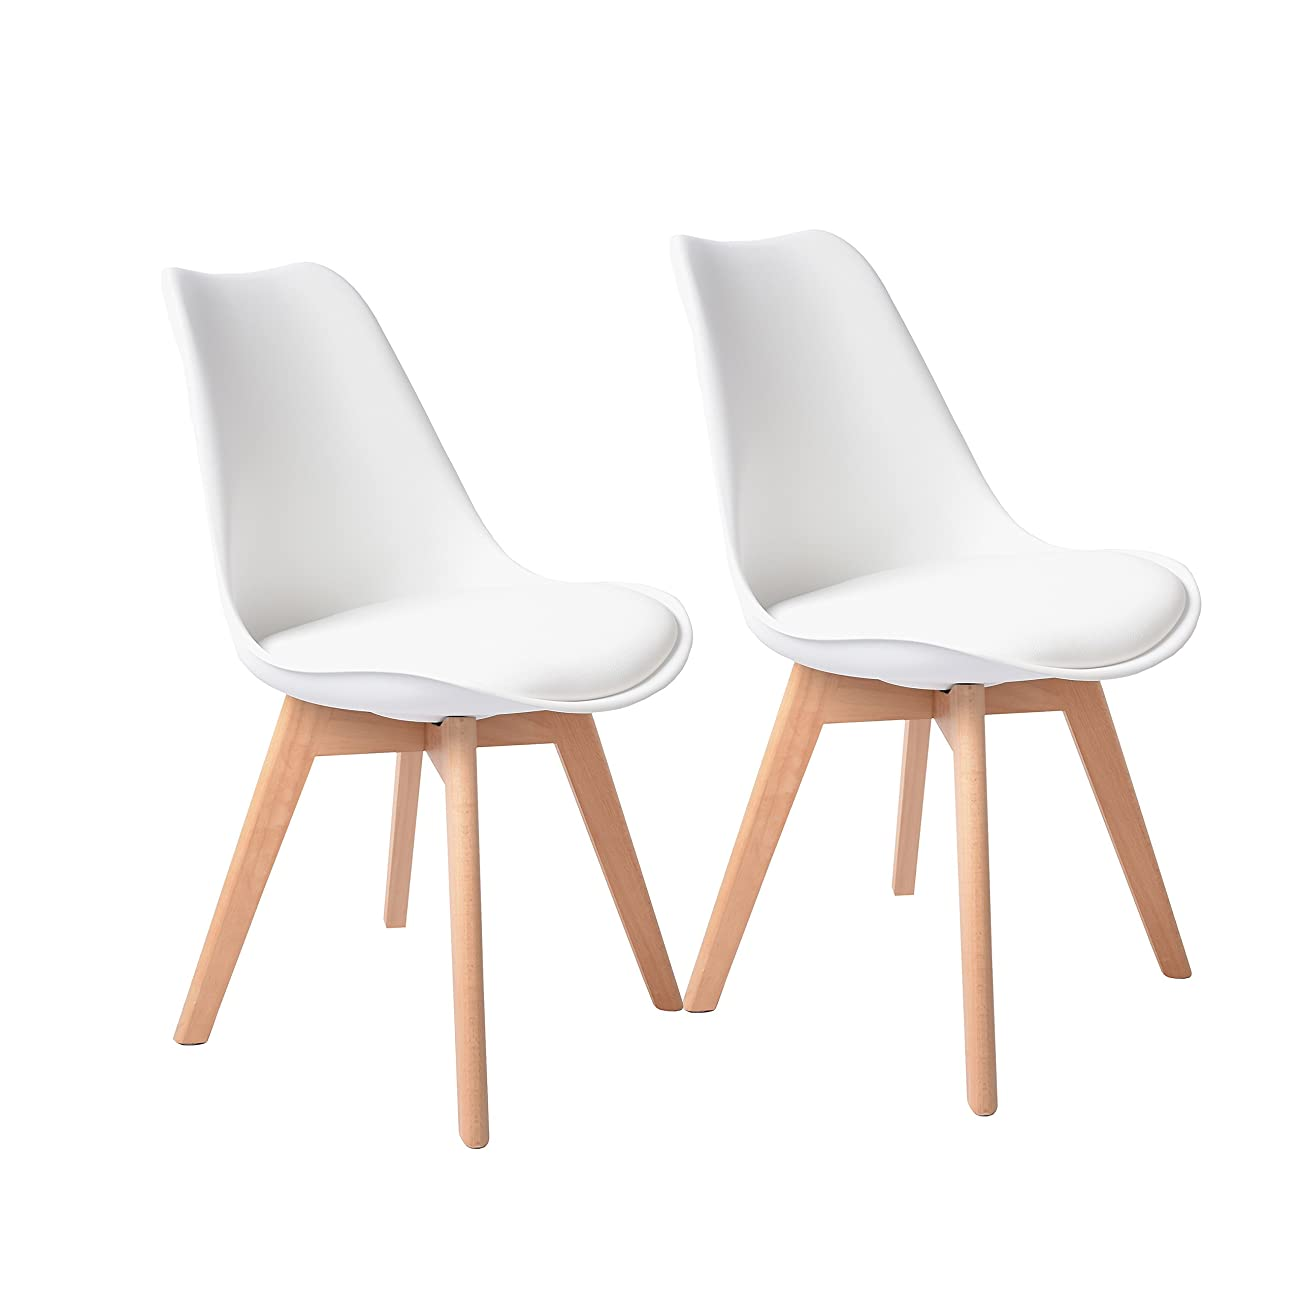 Buschman Set of Two White Eames-Style Mid Century Modern Dining Room Wooden Legs Soft Padded Chairs 0